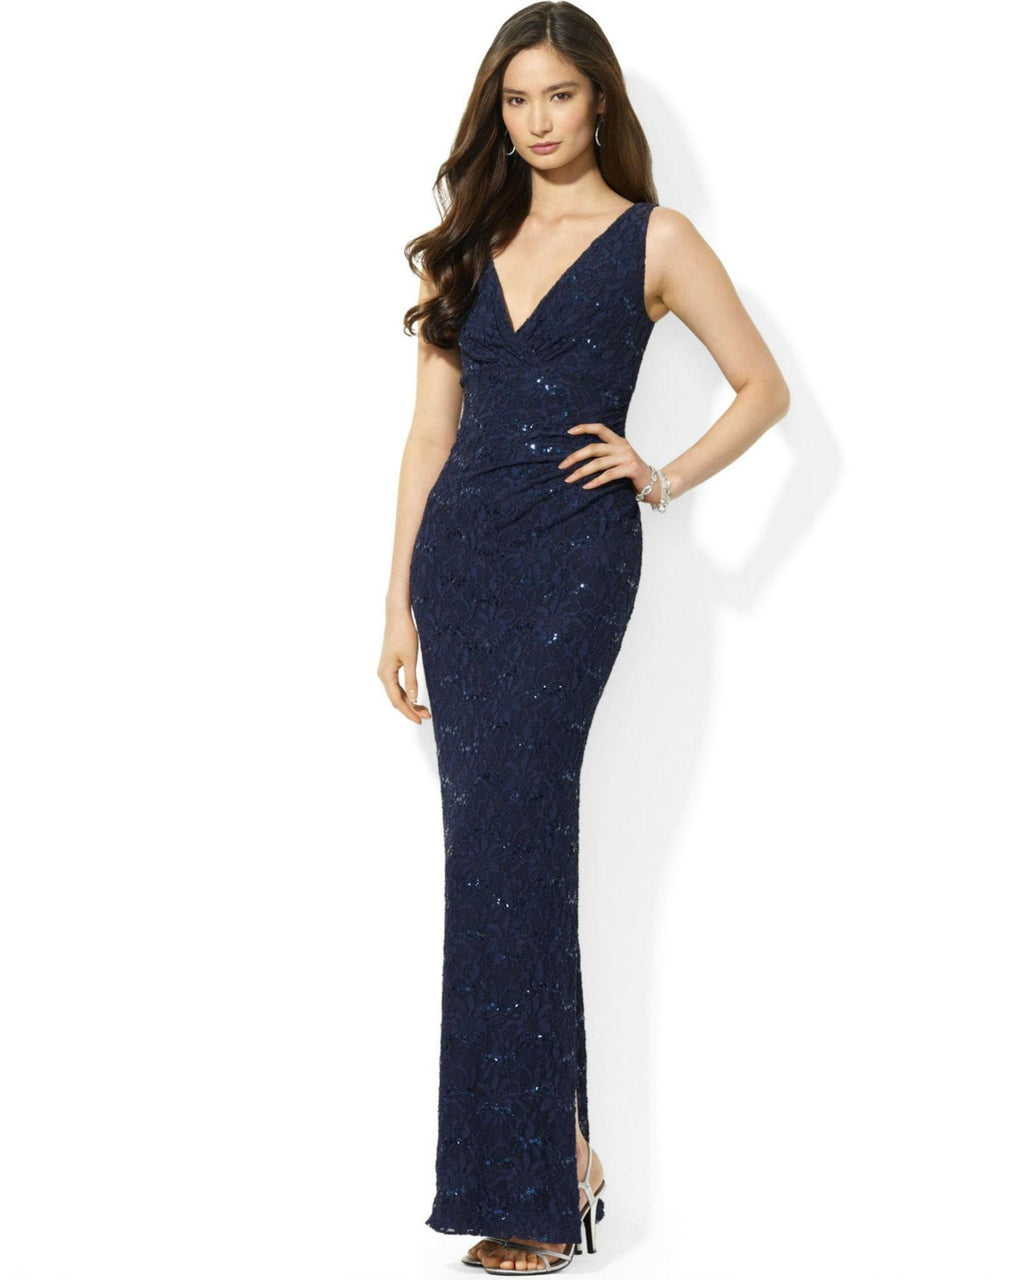 Lauren Ralph Lauren Sleeveless Sequined Lace Gown-LAUREN RALPH LAUREN-Fashionbarn shop